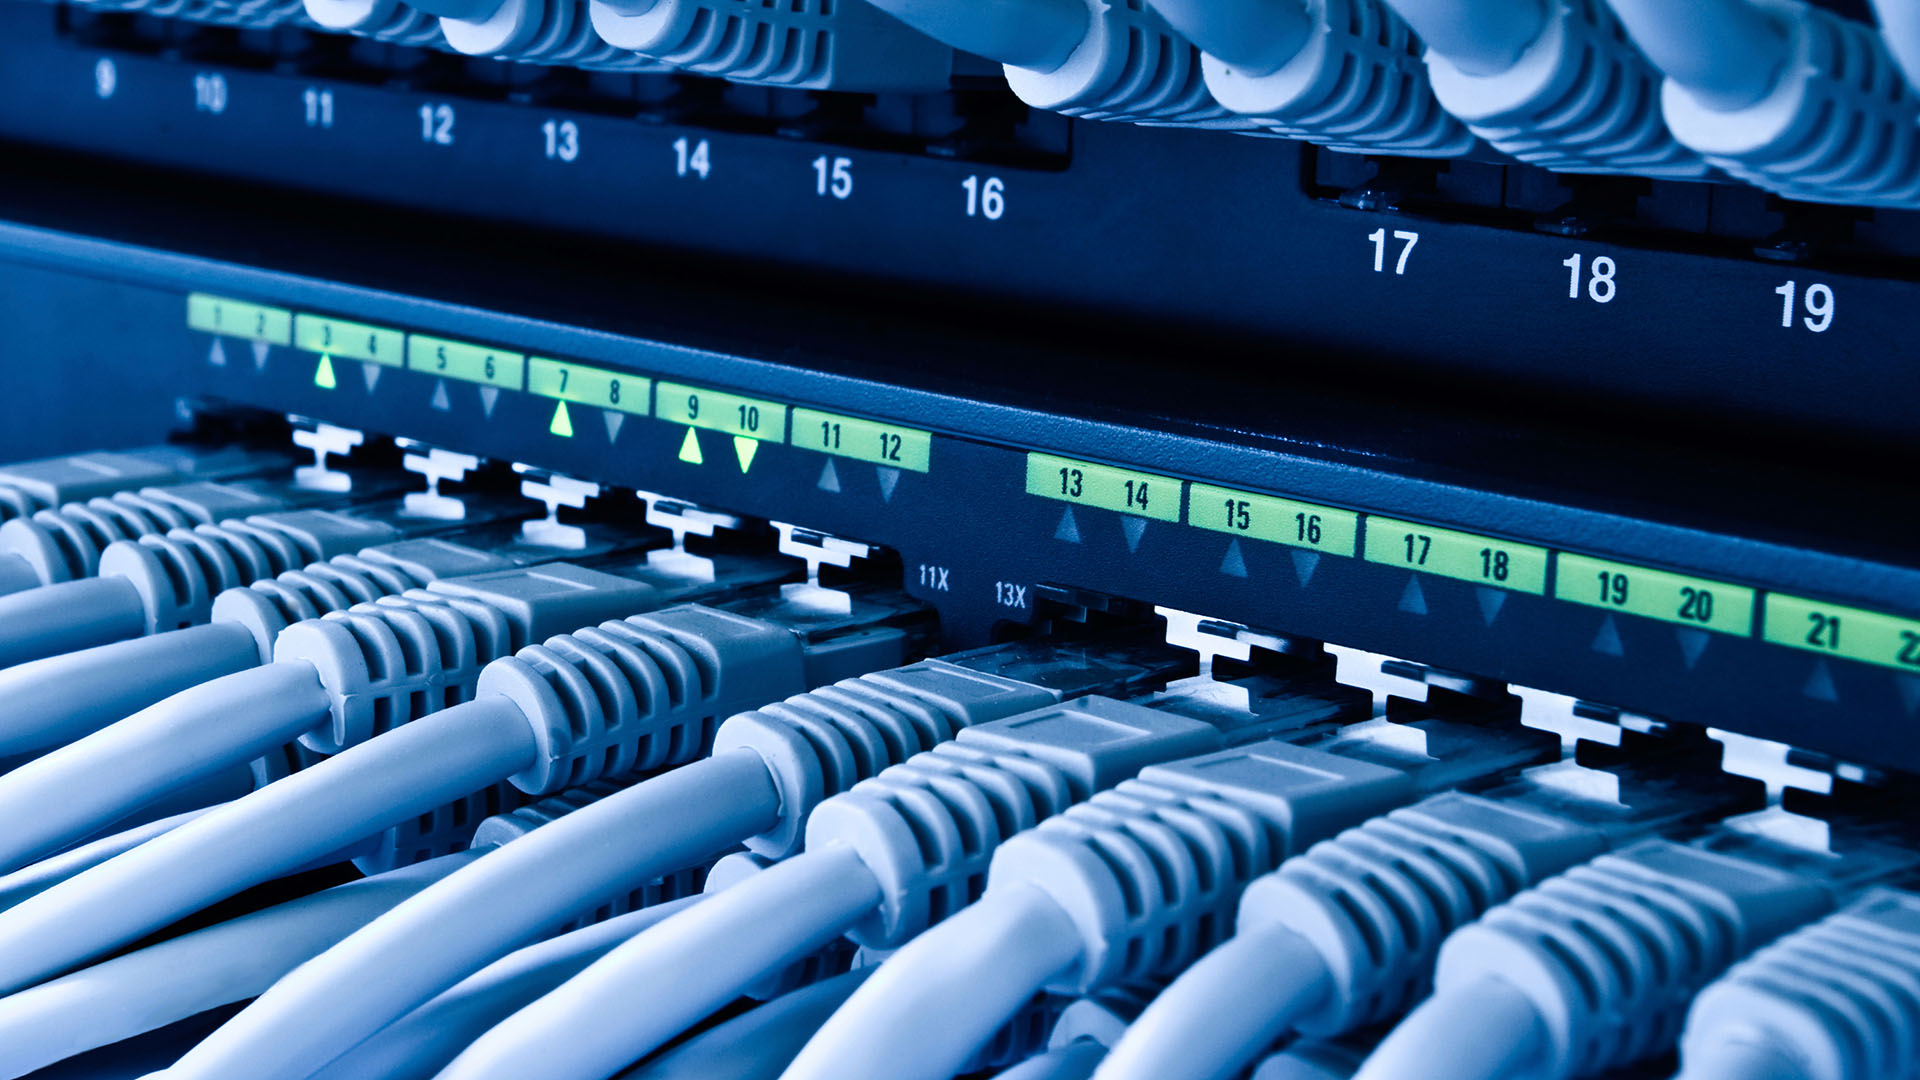 Lebanon Junction Kentucky Preferred Voice & Data Network Cabling Services